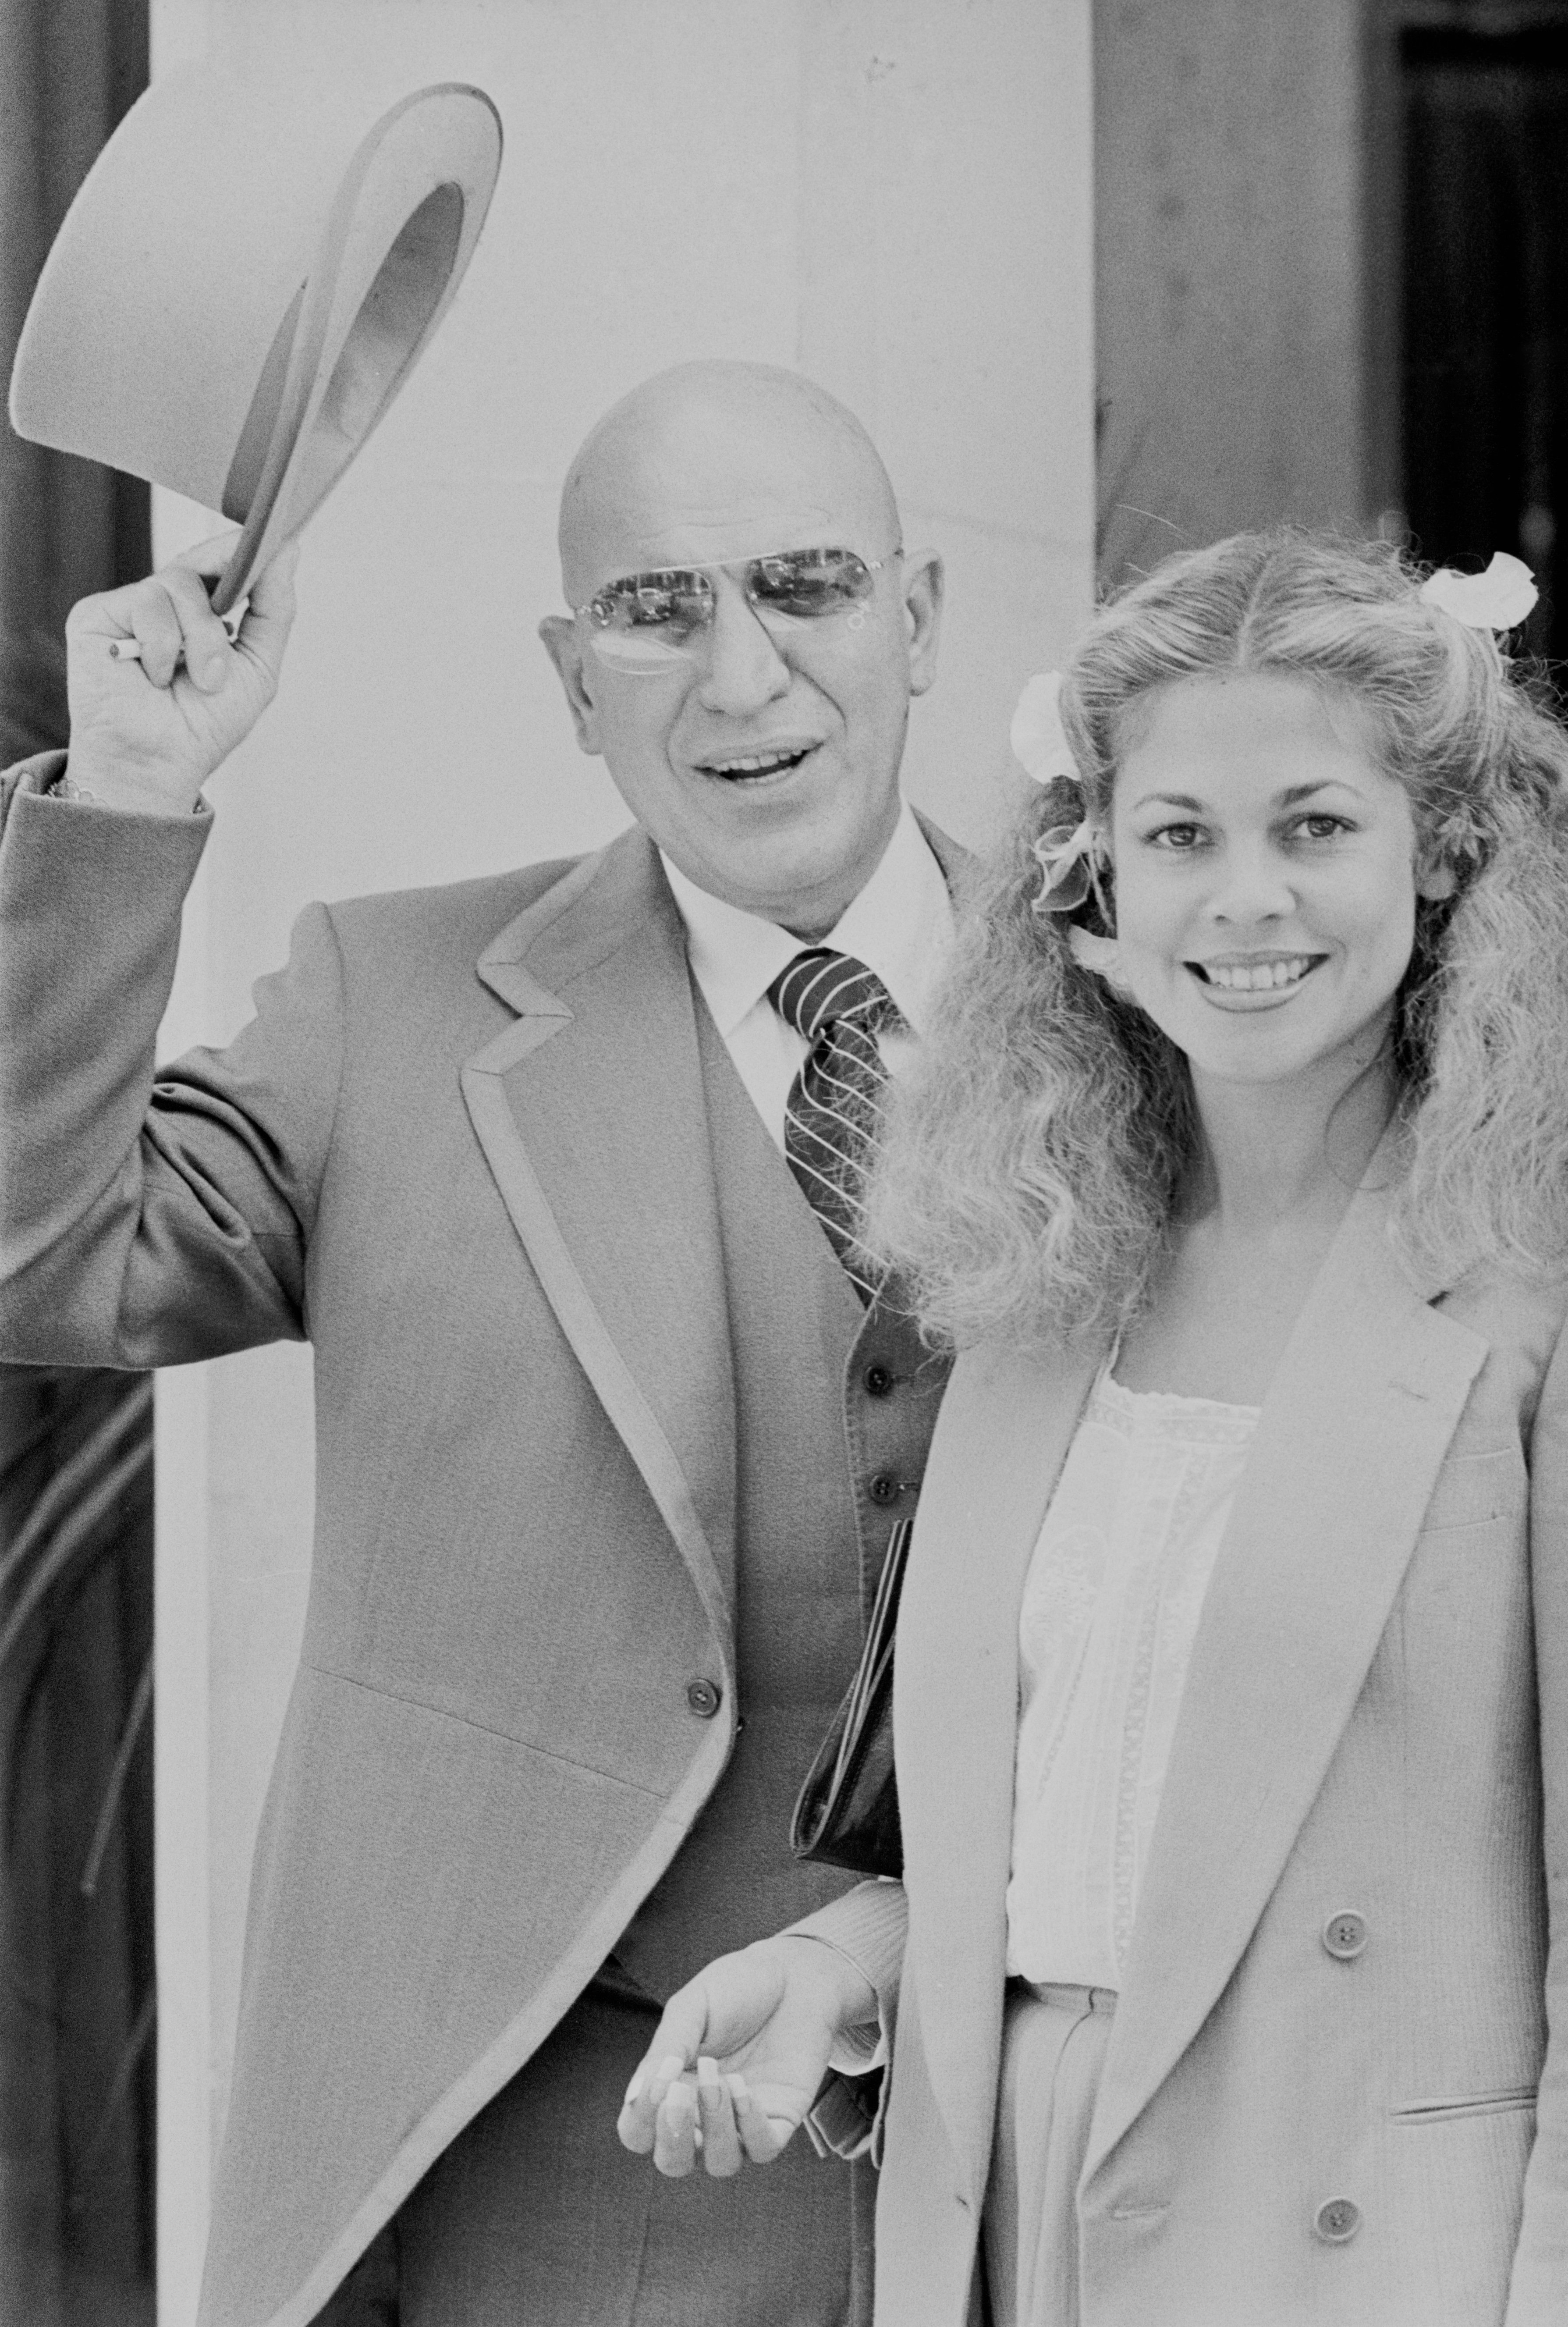 American singer and actor Telly Savalas (1922 - 1994) with girlfriend Sally Adams, UK, 20th June 1977 | Photo: Getty Images